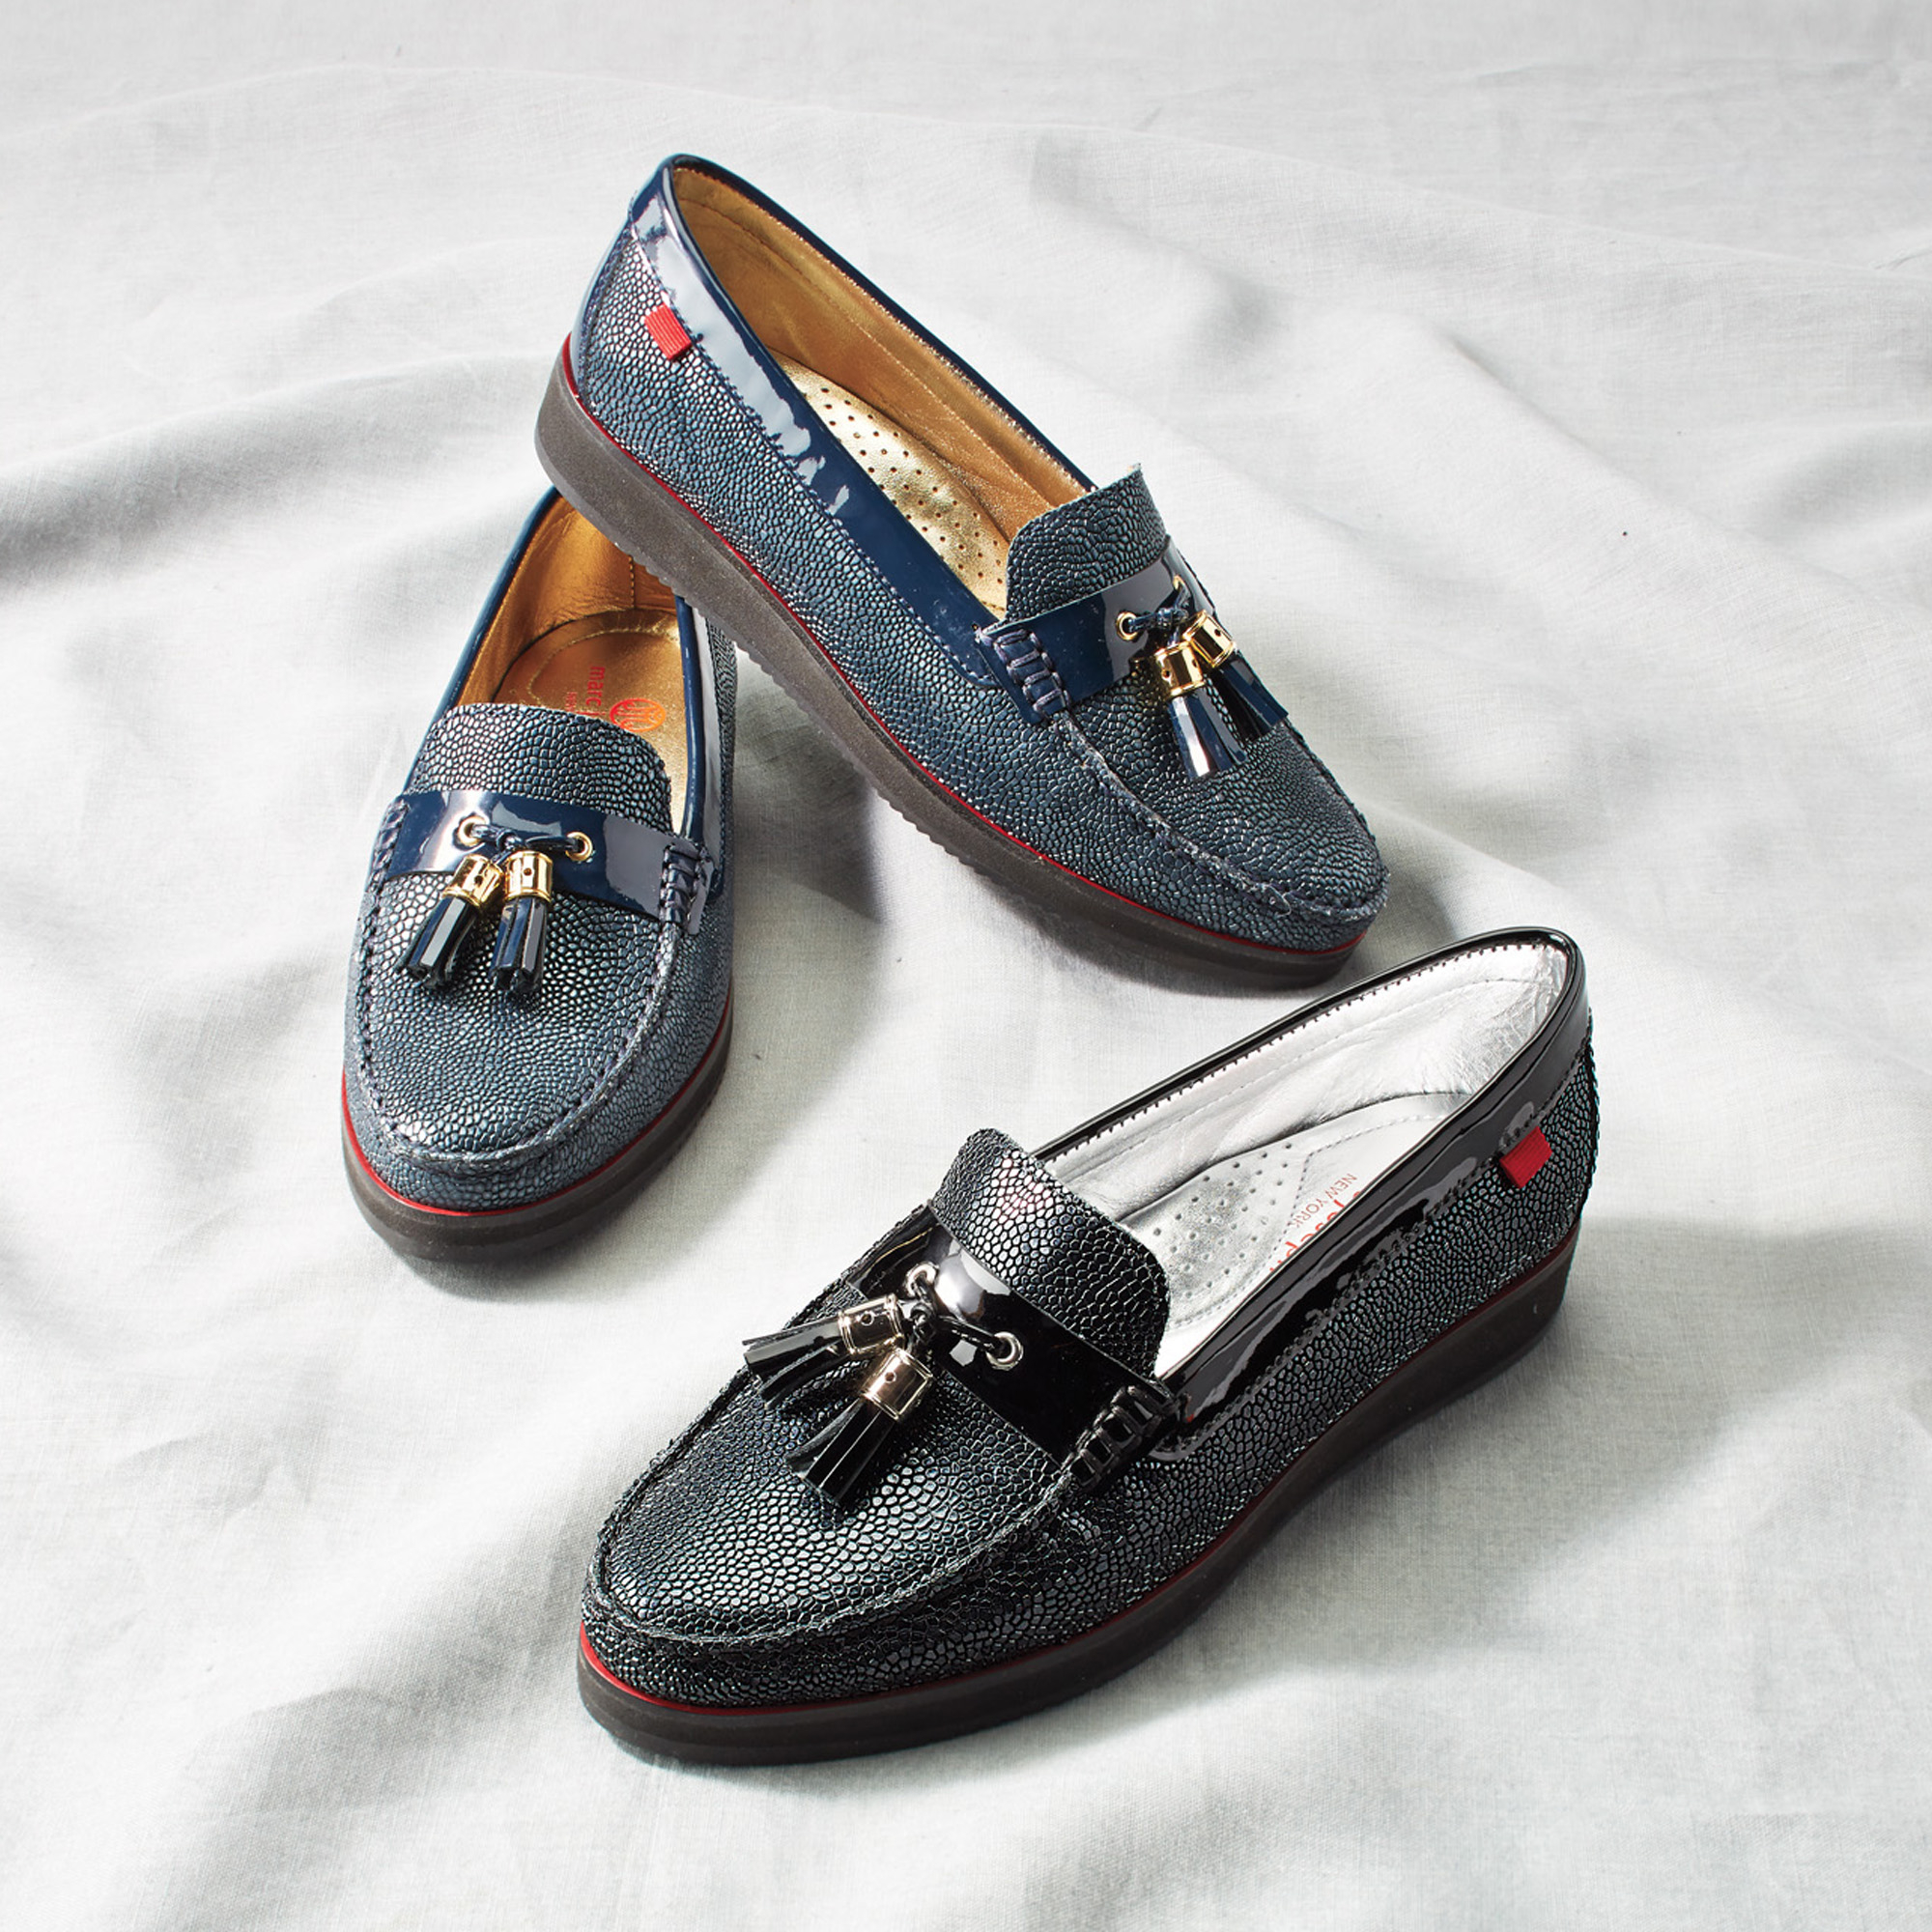 Marc Joseph Brooklyn Loafers